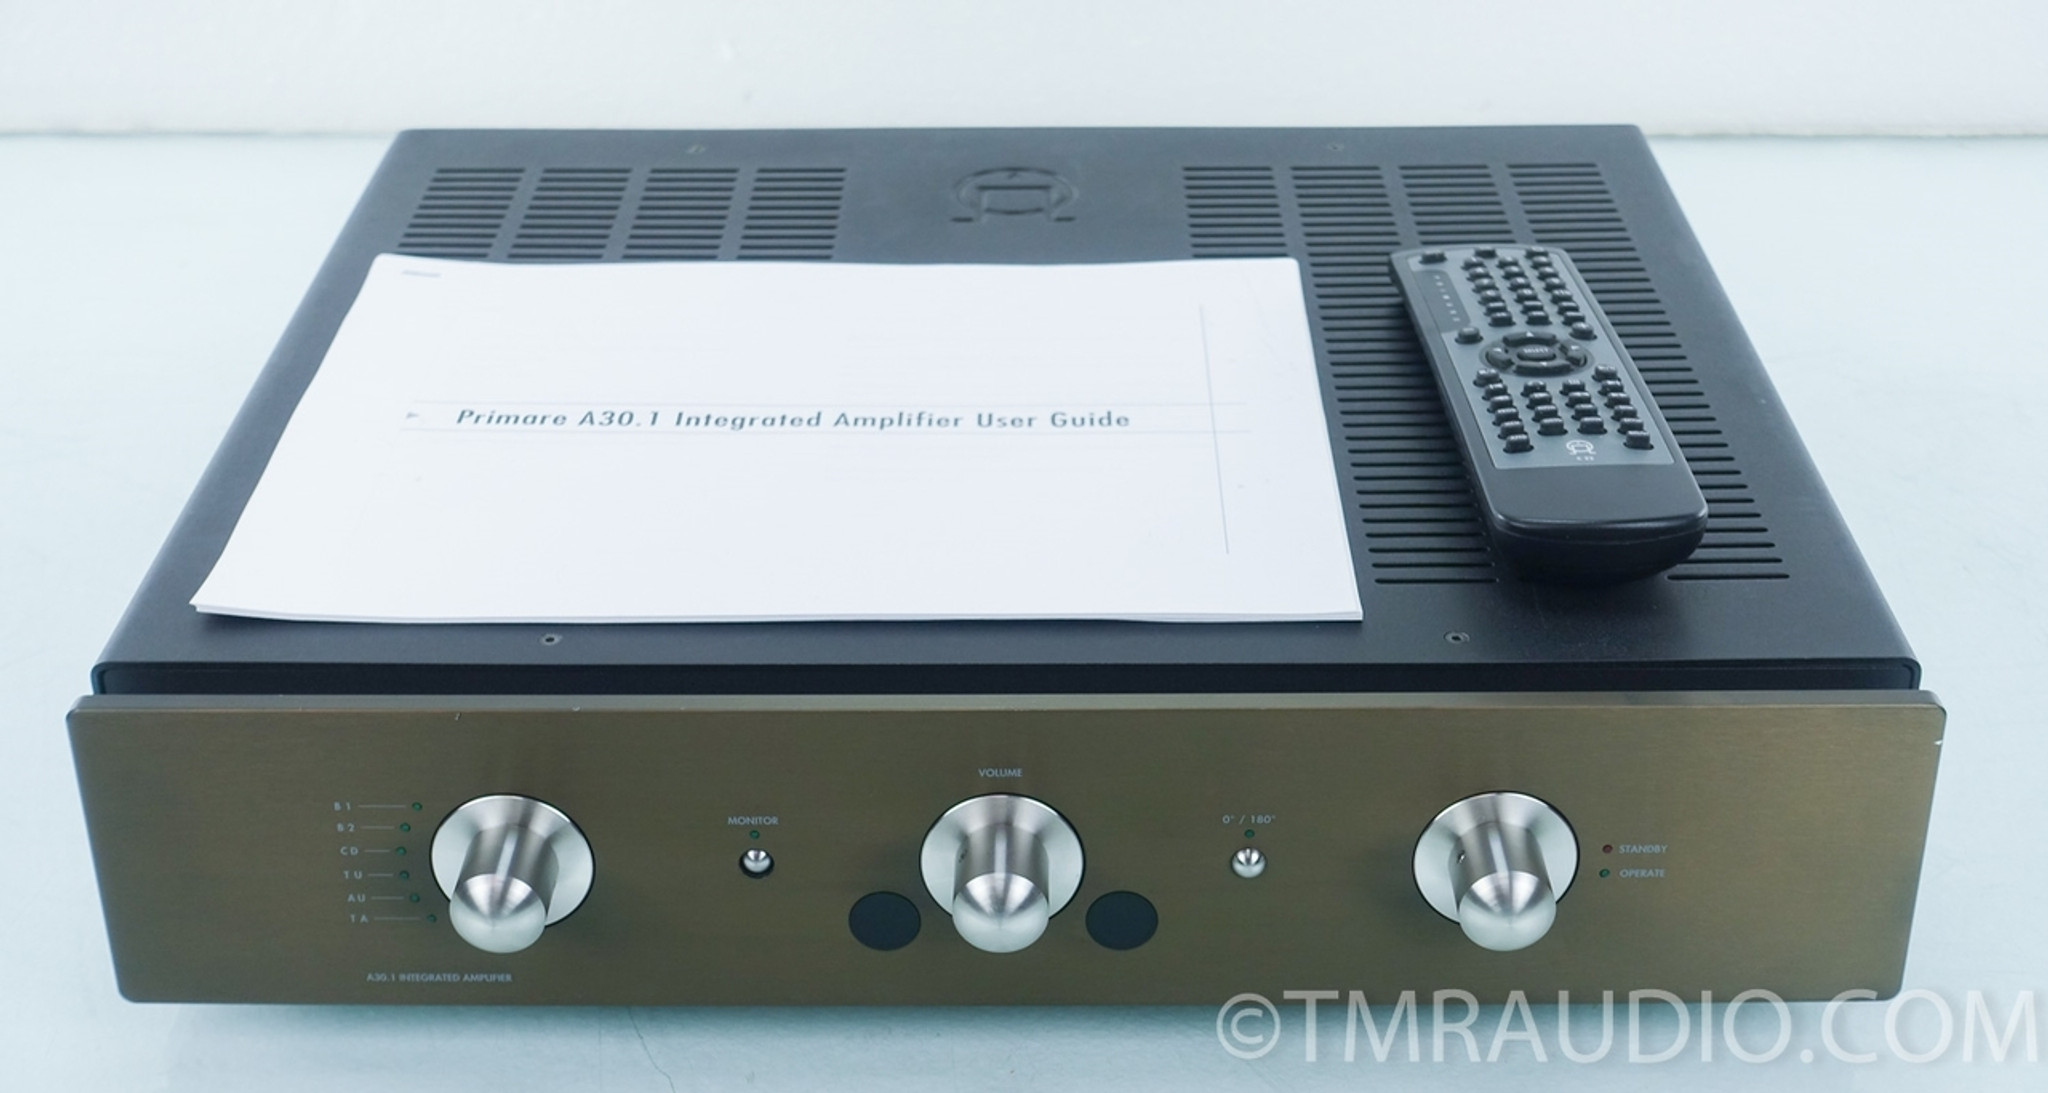 Primare A30 1 mk ii Stereo Integrated Amplifier